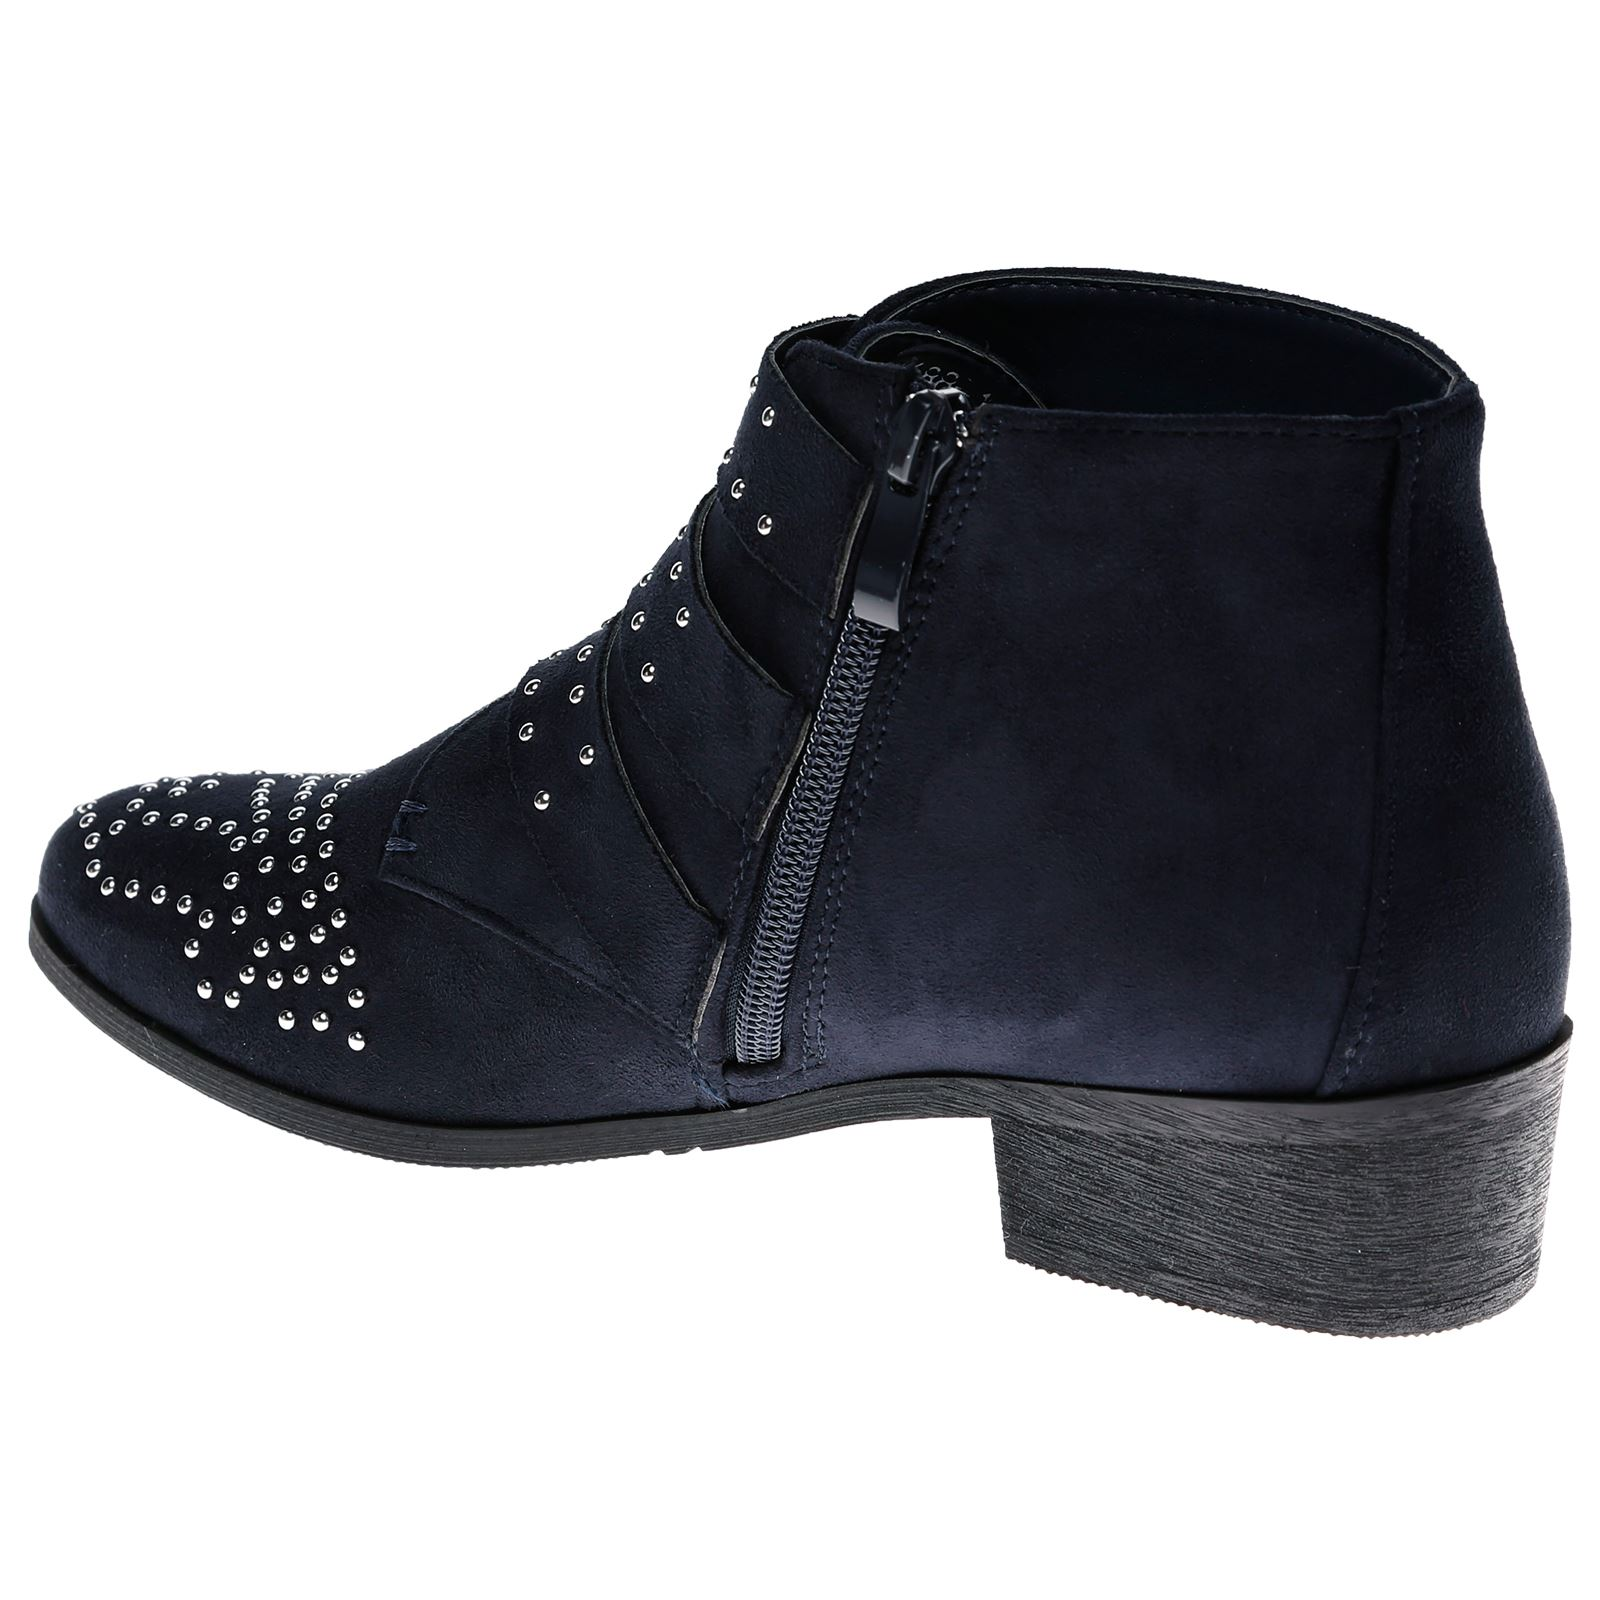 Liv-Womens-Flats-Low-Heels-Buckle-Strappy-Biker-Ankle-Boots-Ladies-Shoes-Studded thumbnail 25